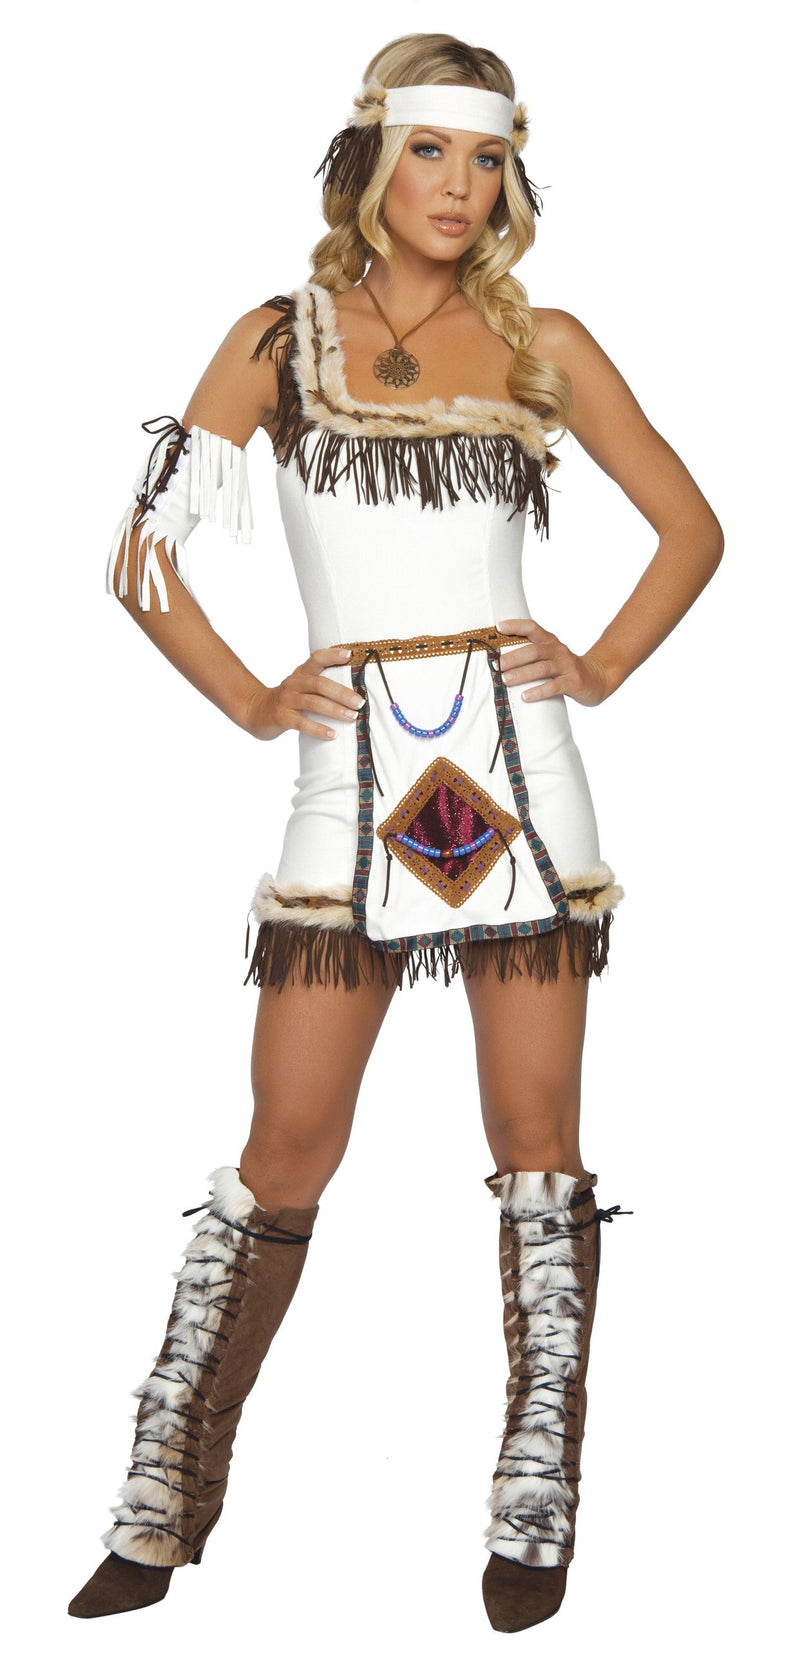 4-Piece-Indian-Princess-Fringe-Dress-Costume